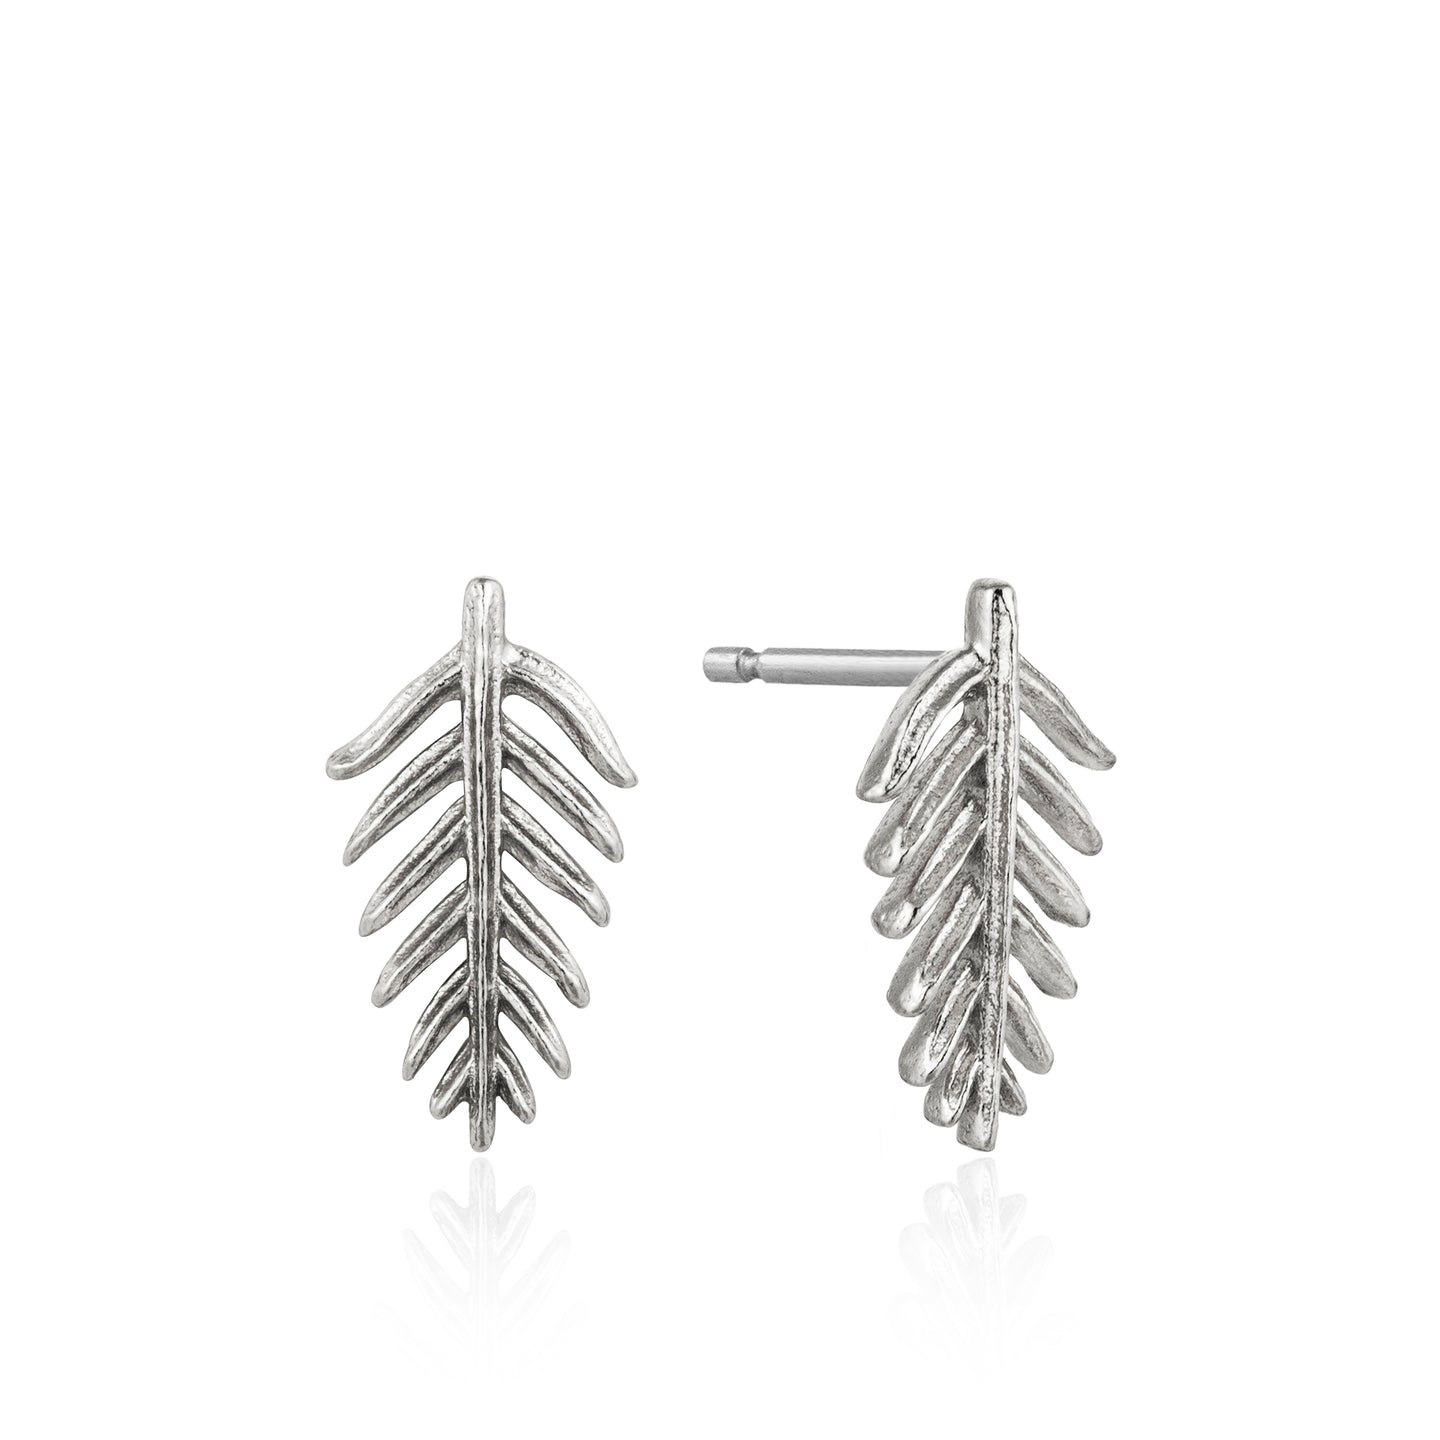 Silver Palm Stud Earrings E011-03H